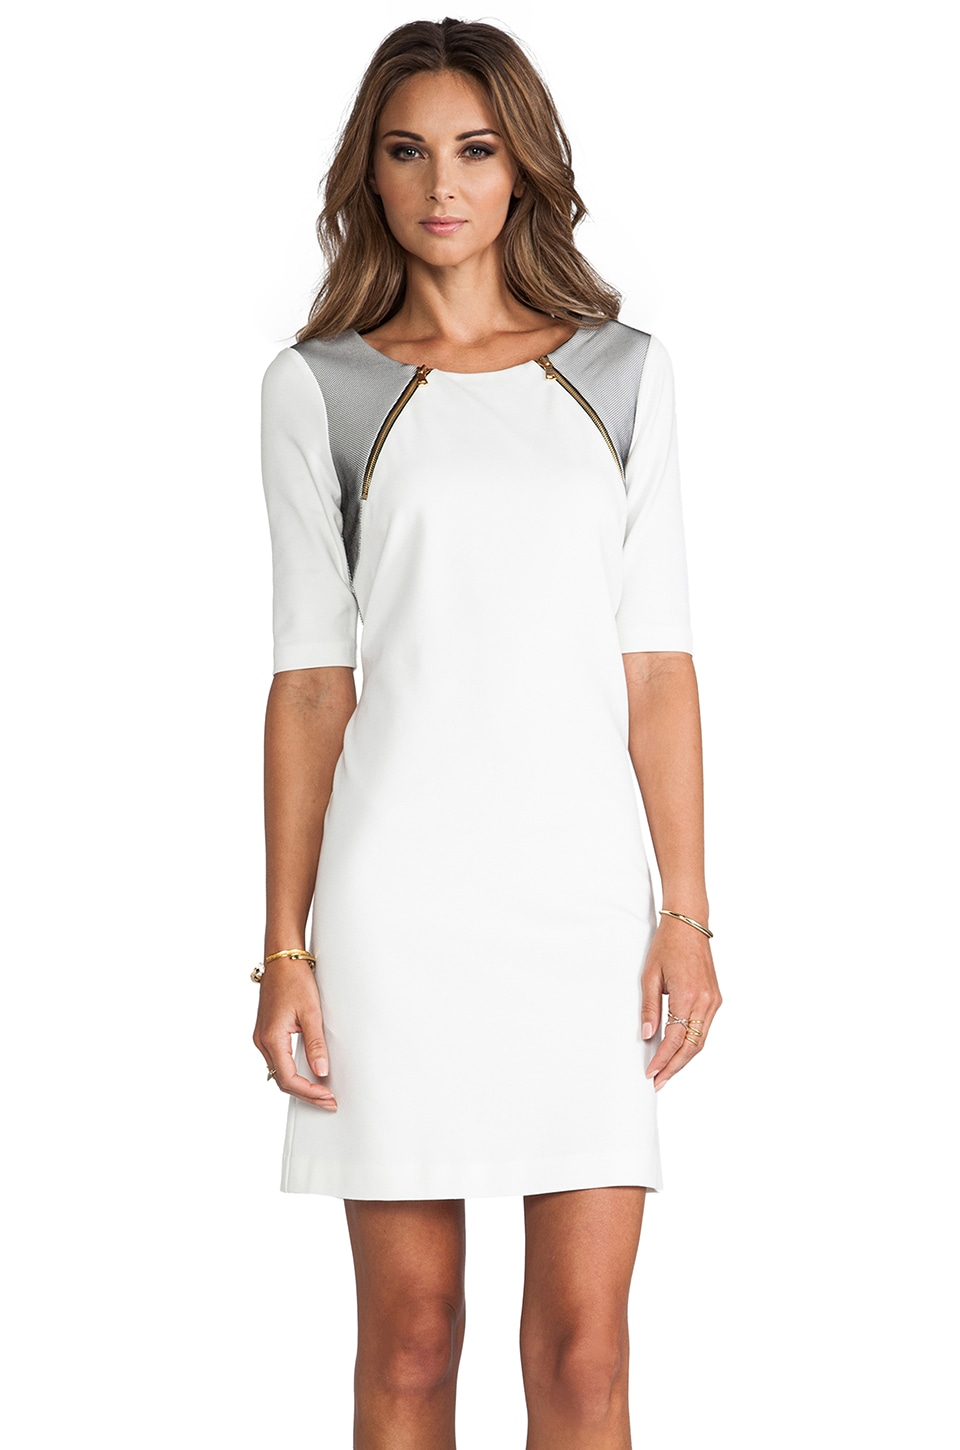 Trina Turk Milena Dress in Whitewash